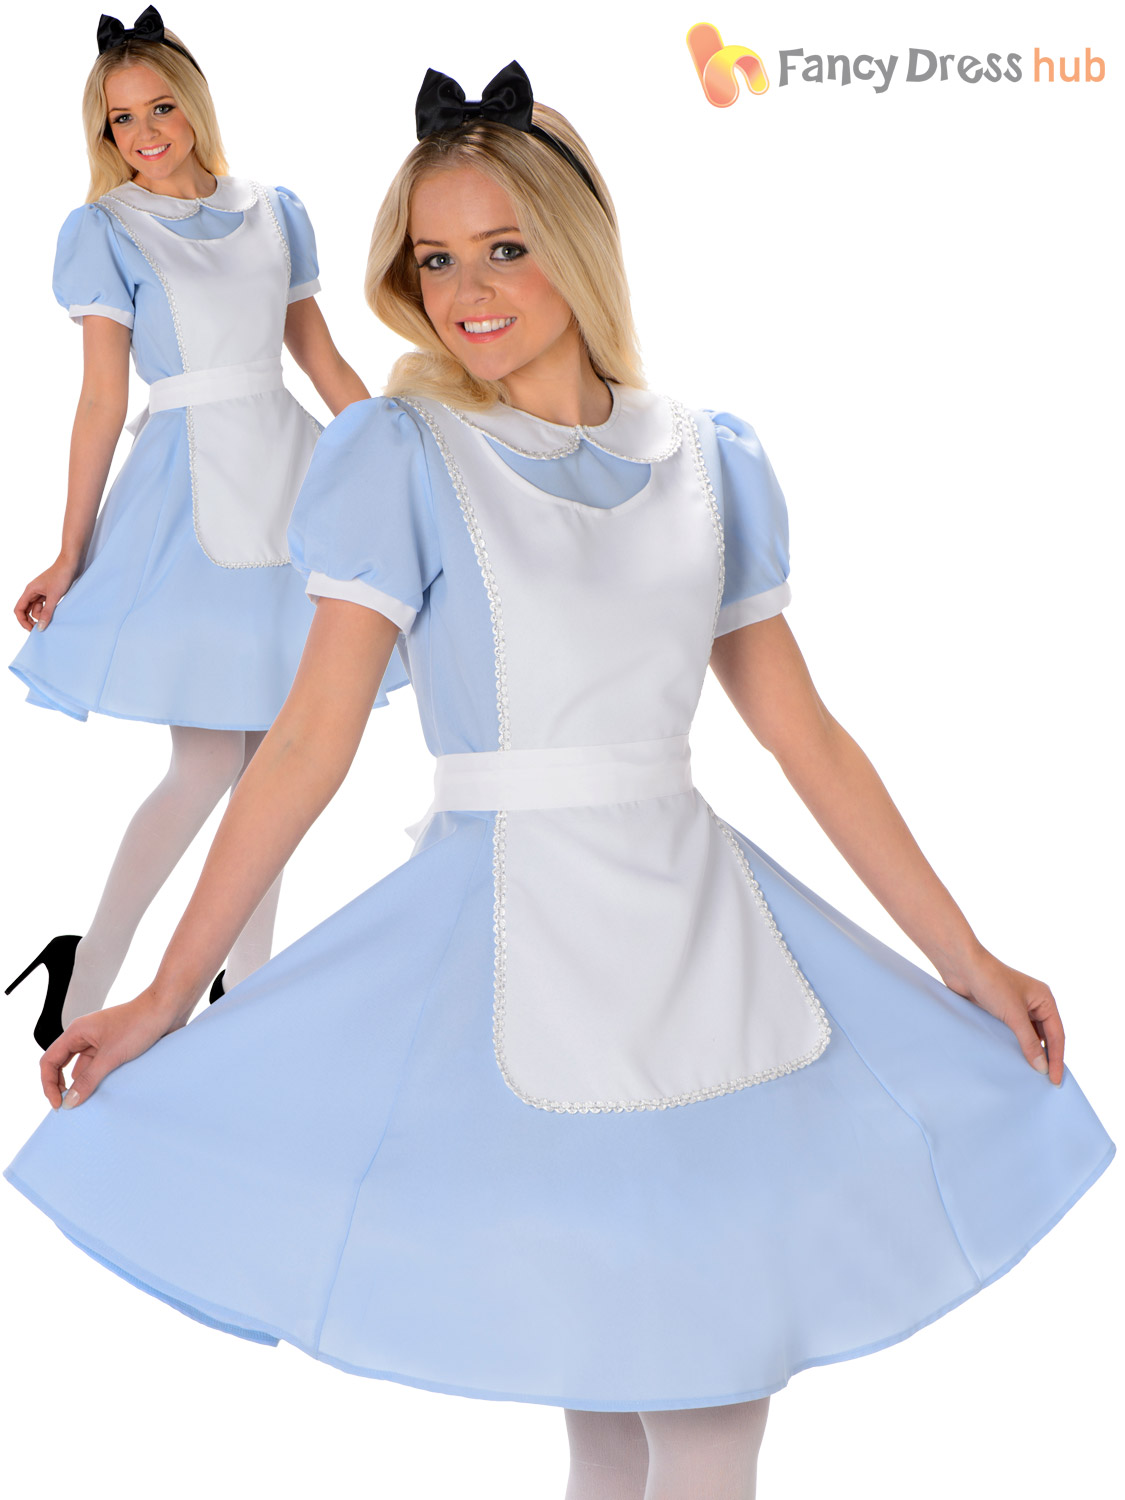 Damas-de-cuento-de-hadas-Disfraz-de-Alice-Wonderland-Fancy-Dress-para-Mujer-Adultos-Traje-De-Libro